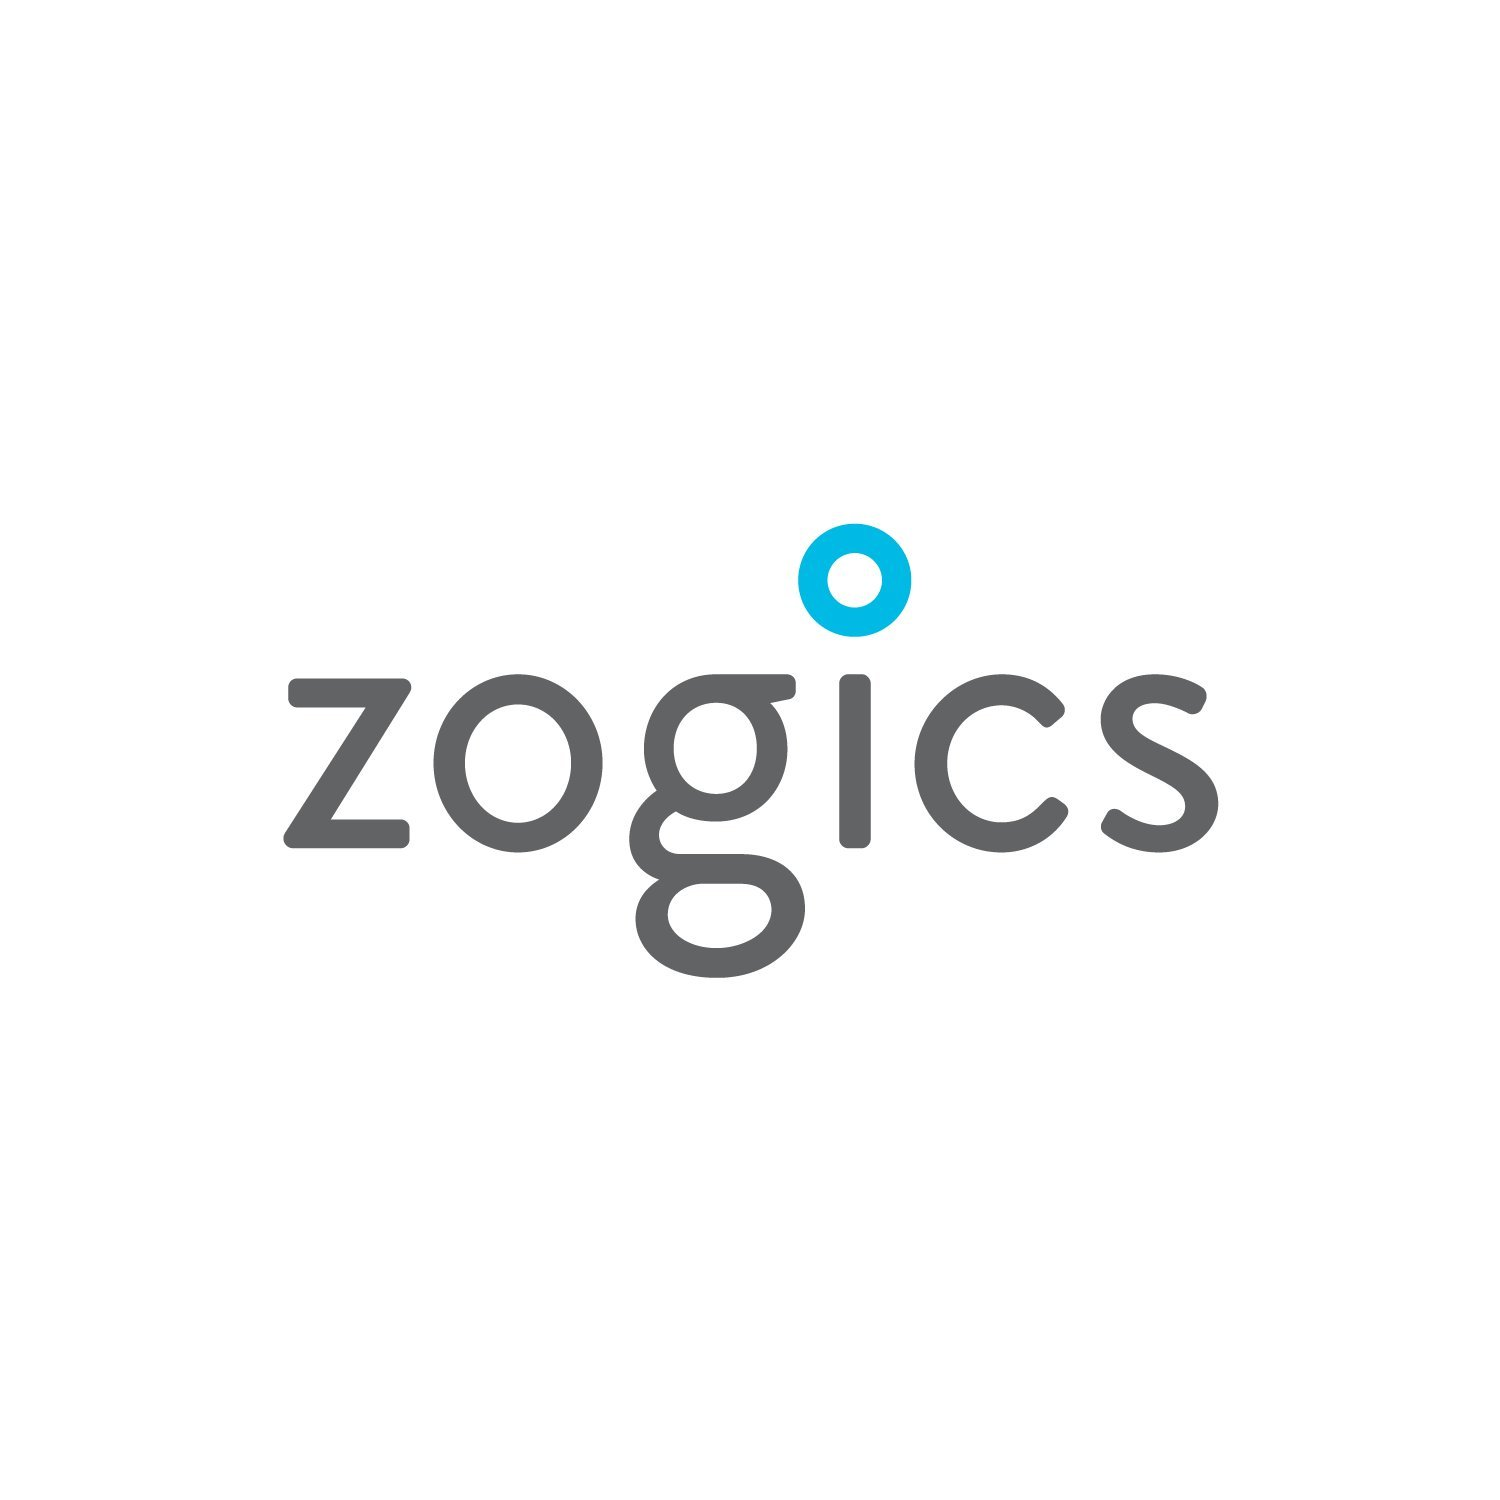 Zogics Value Wipes, Economical Gym Cleaning Wipes (1,500 Wipes/Roll, 4 Rolls/Case) by Zogics (Image #4)